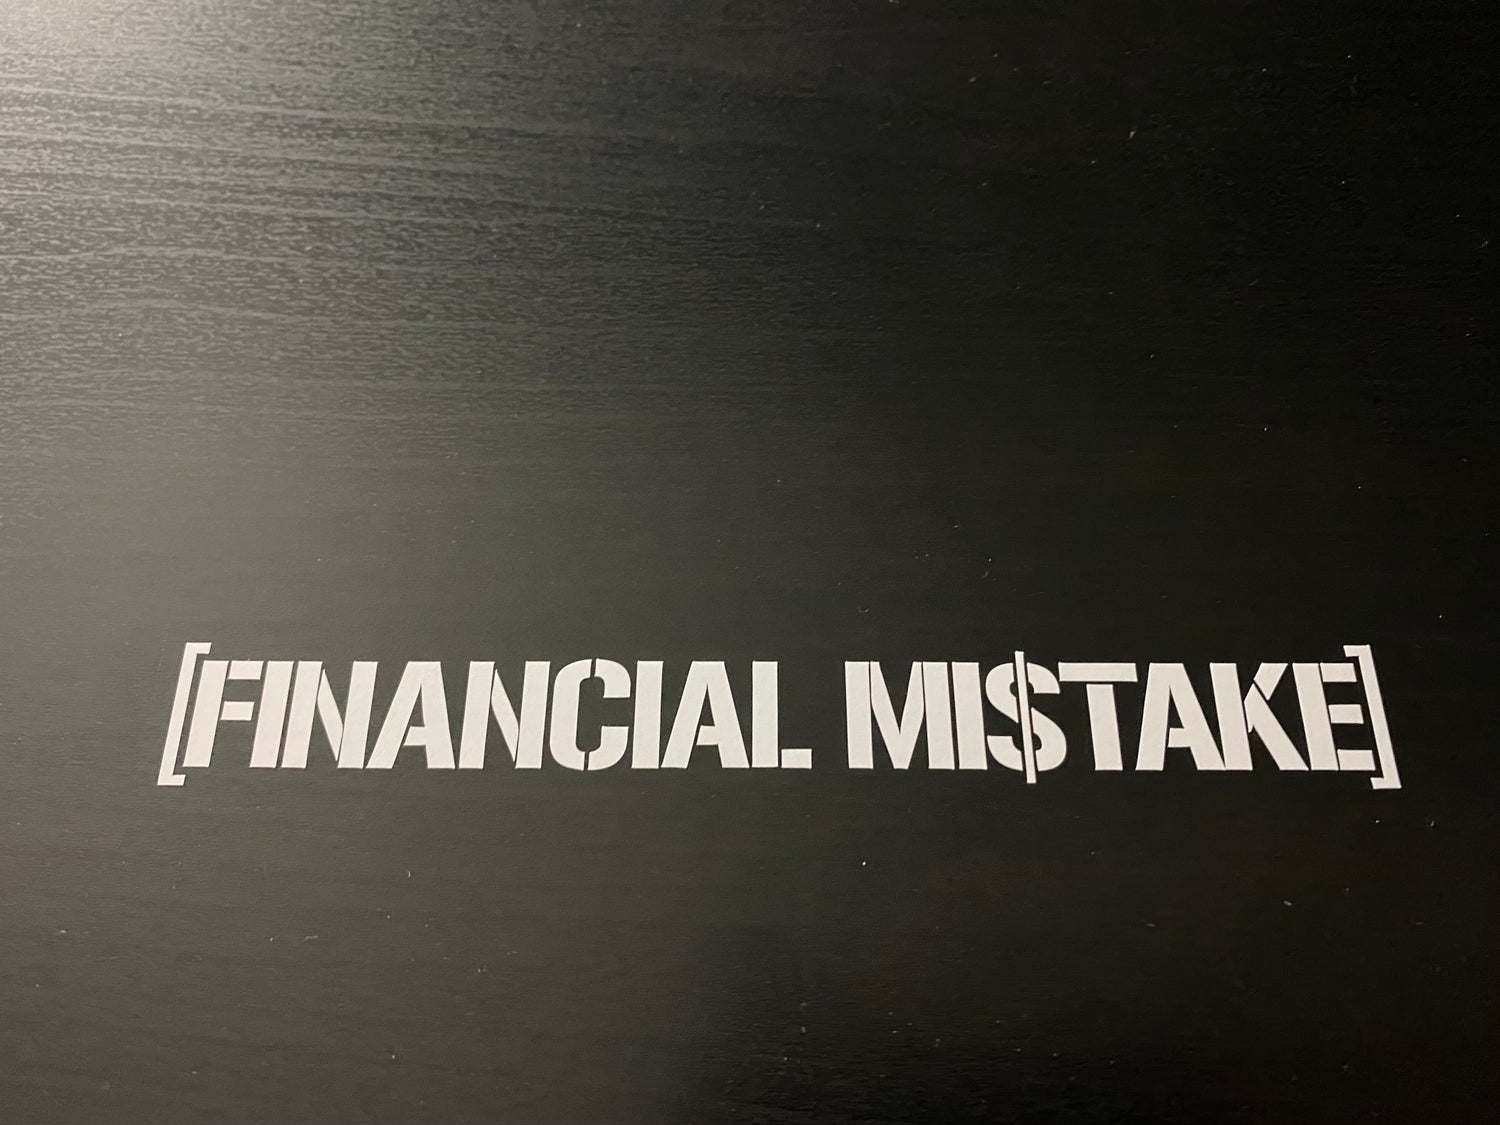 Image of Financial Mistake